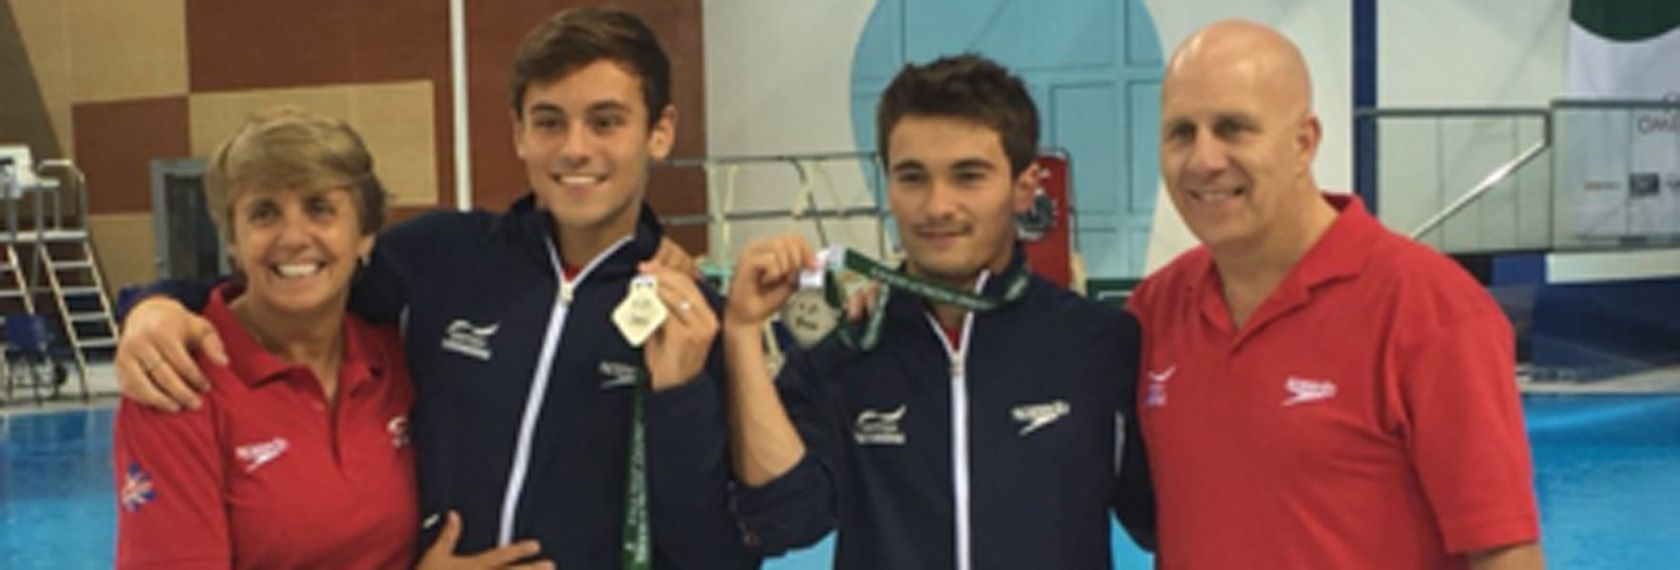 Daley and Goodfellow Silver.jpg